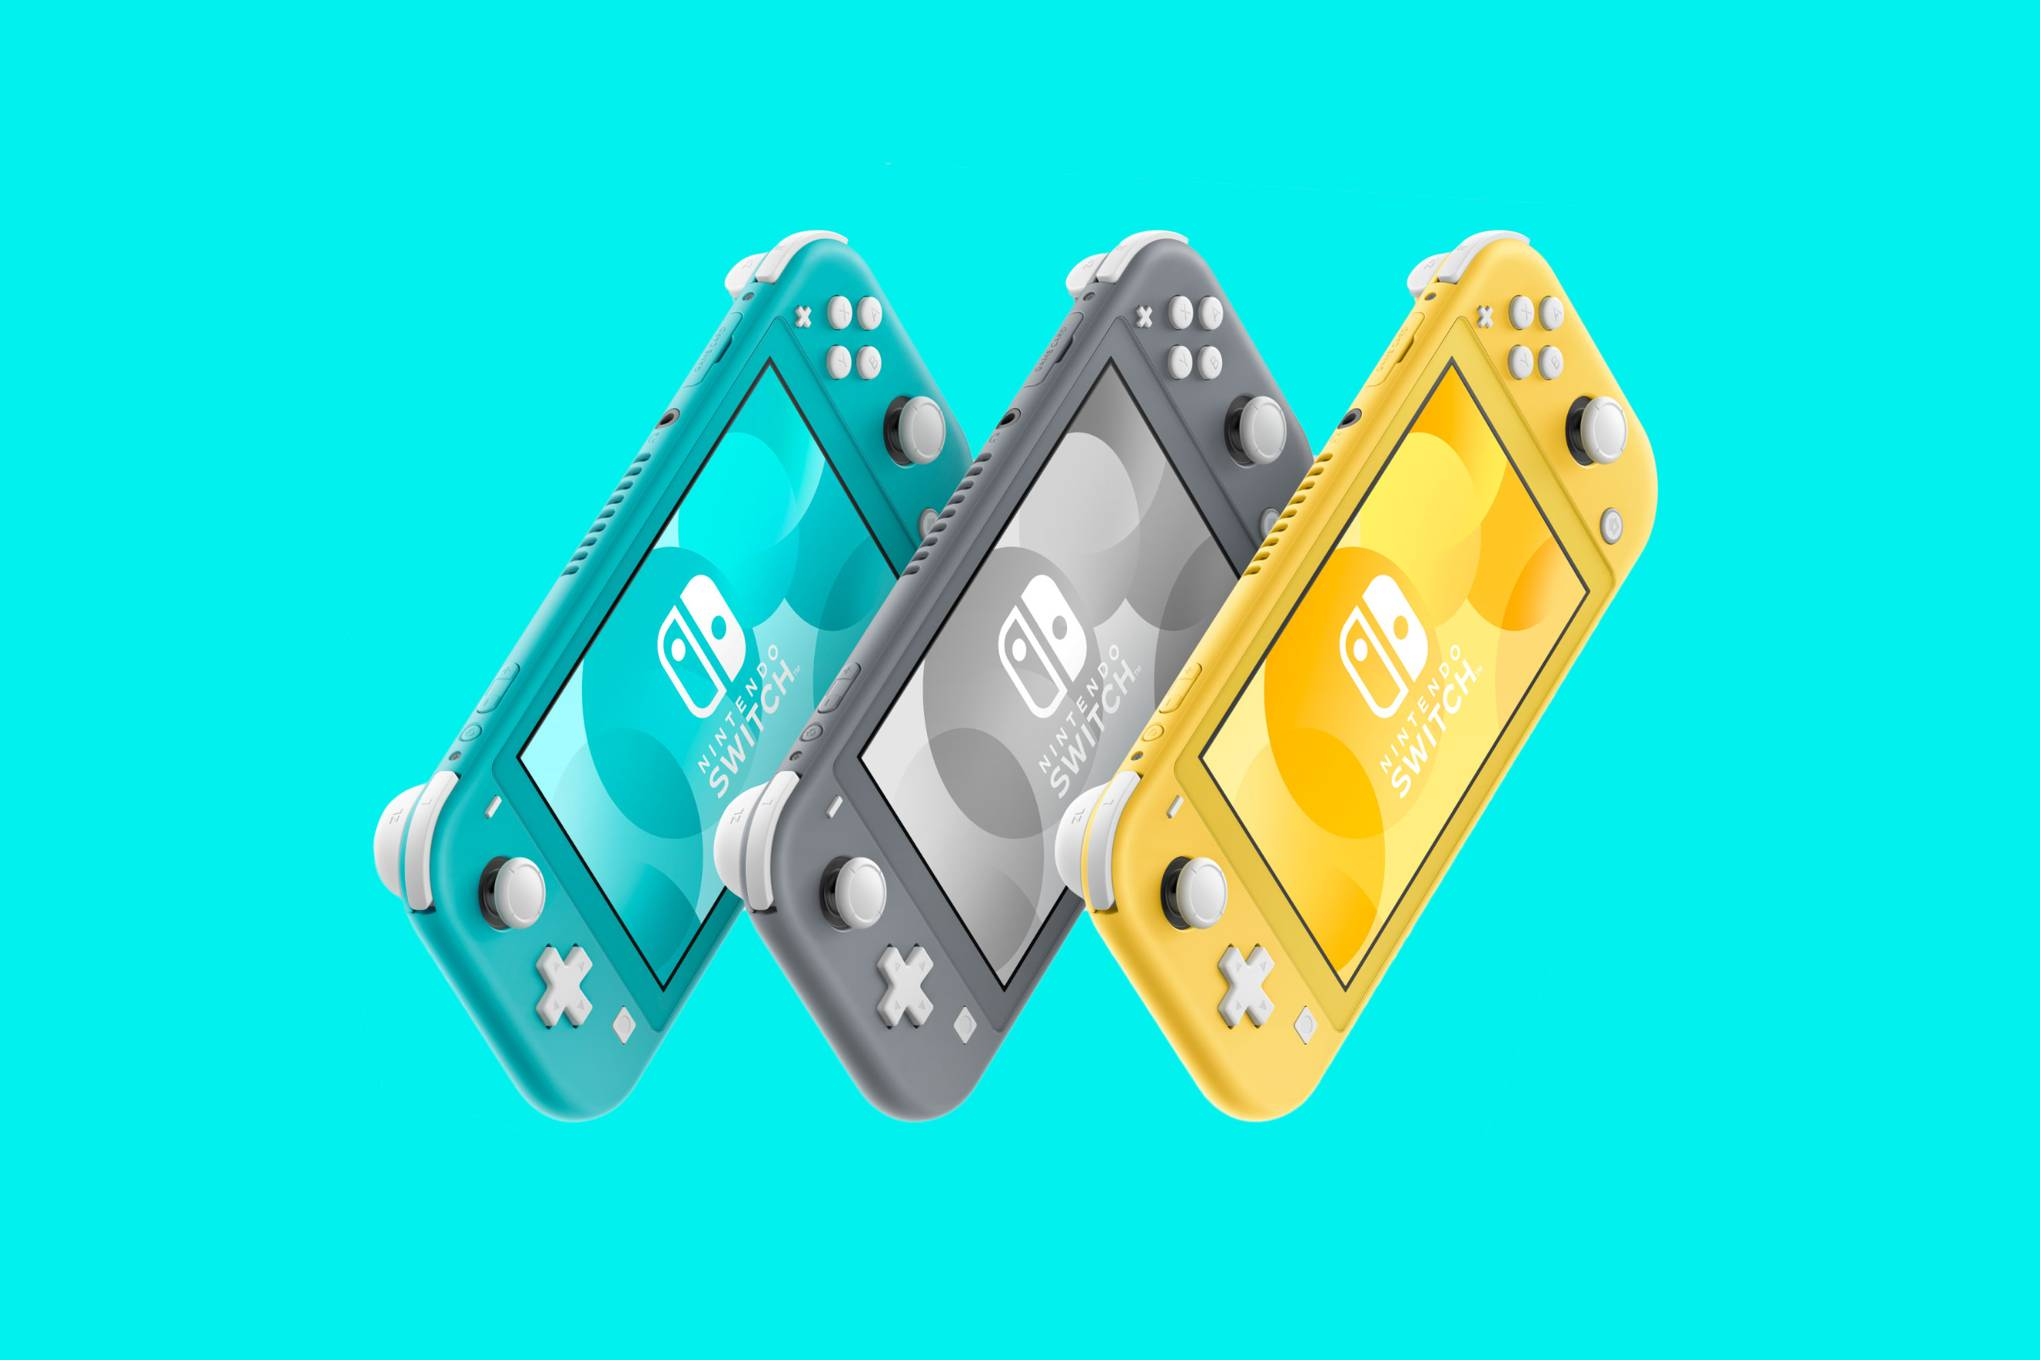 The Nintendo Switch Lite totally reinvents the Switch